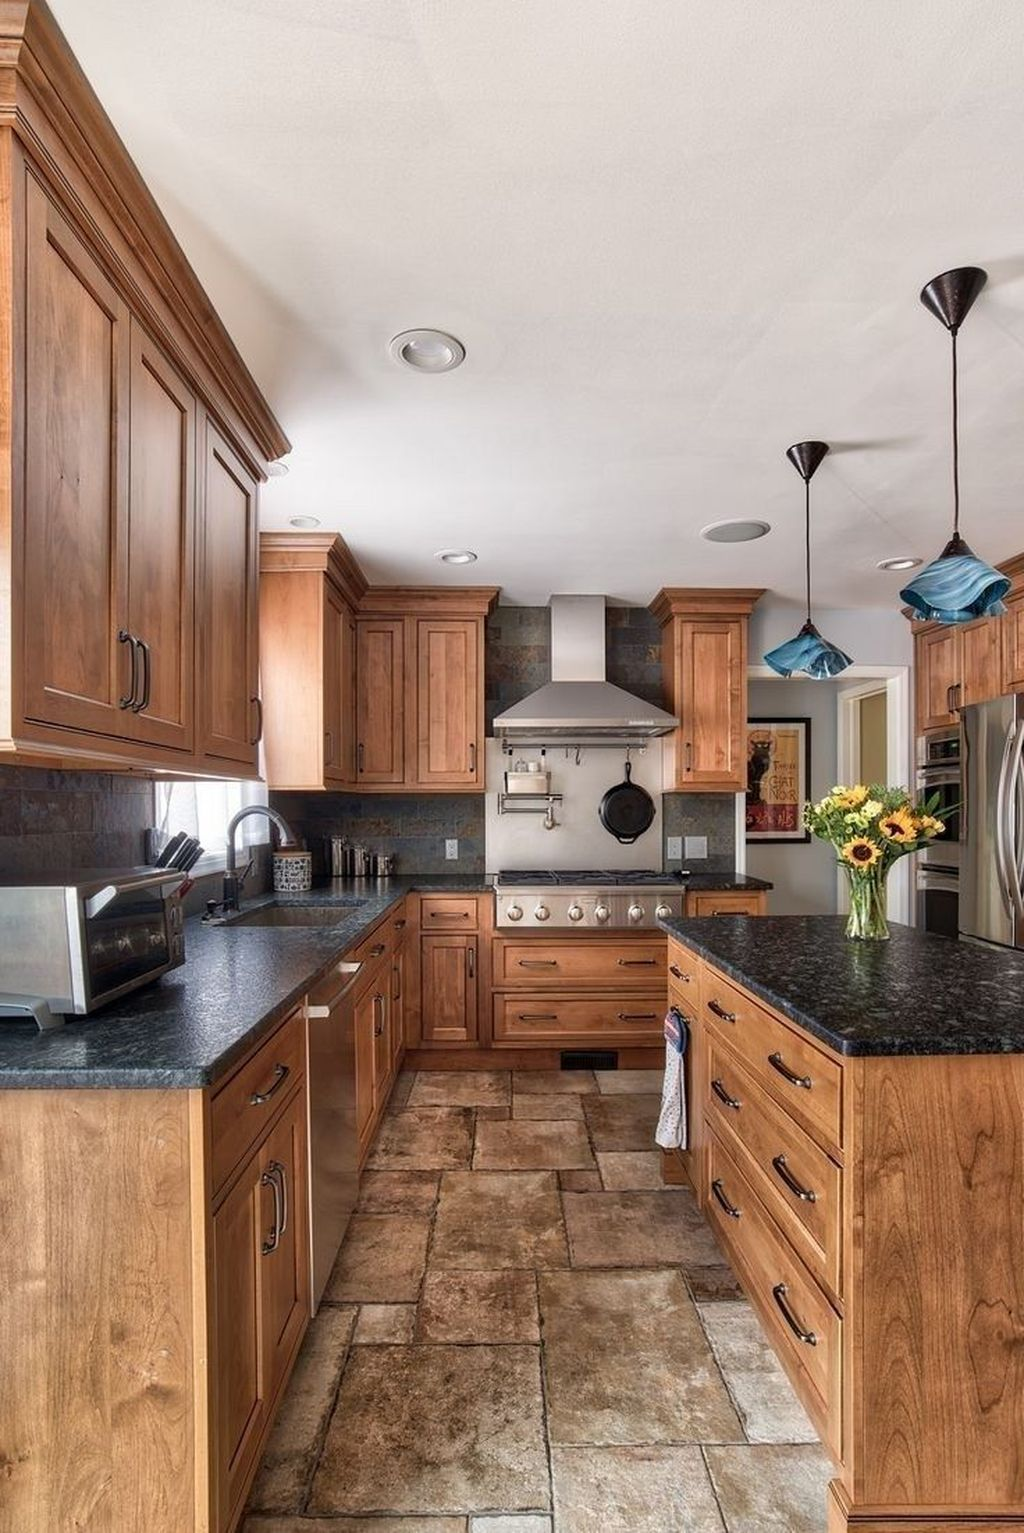 30 awesome farmhouse kitchen cabinets design ideas on awesome modern kitchen design ideas id=32841